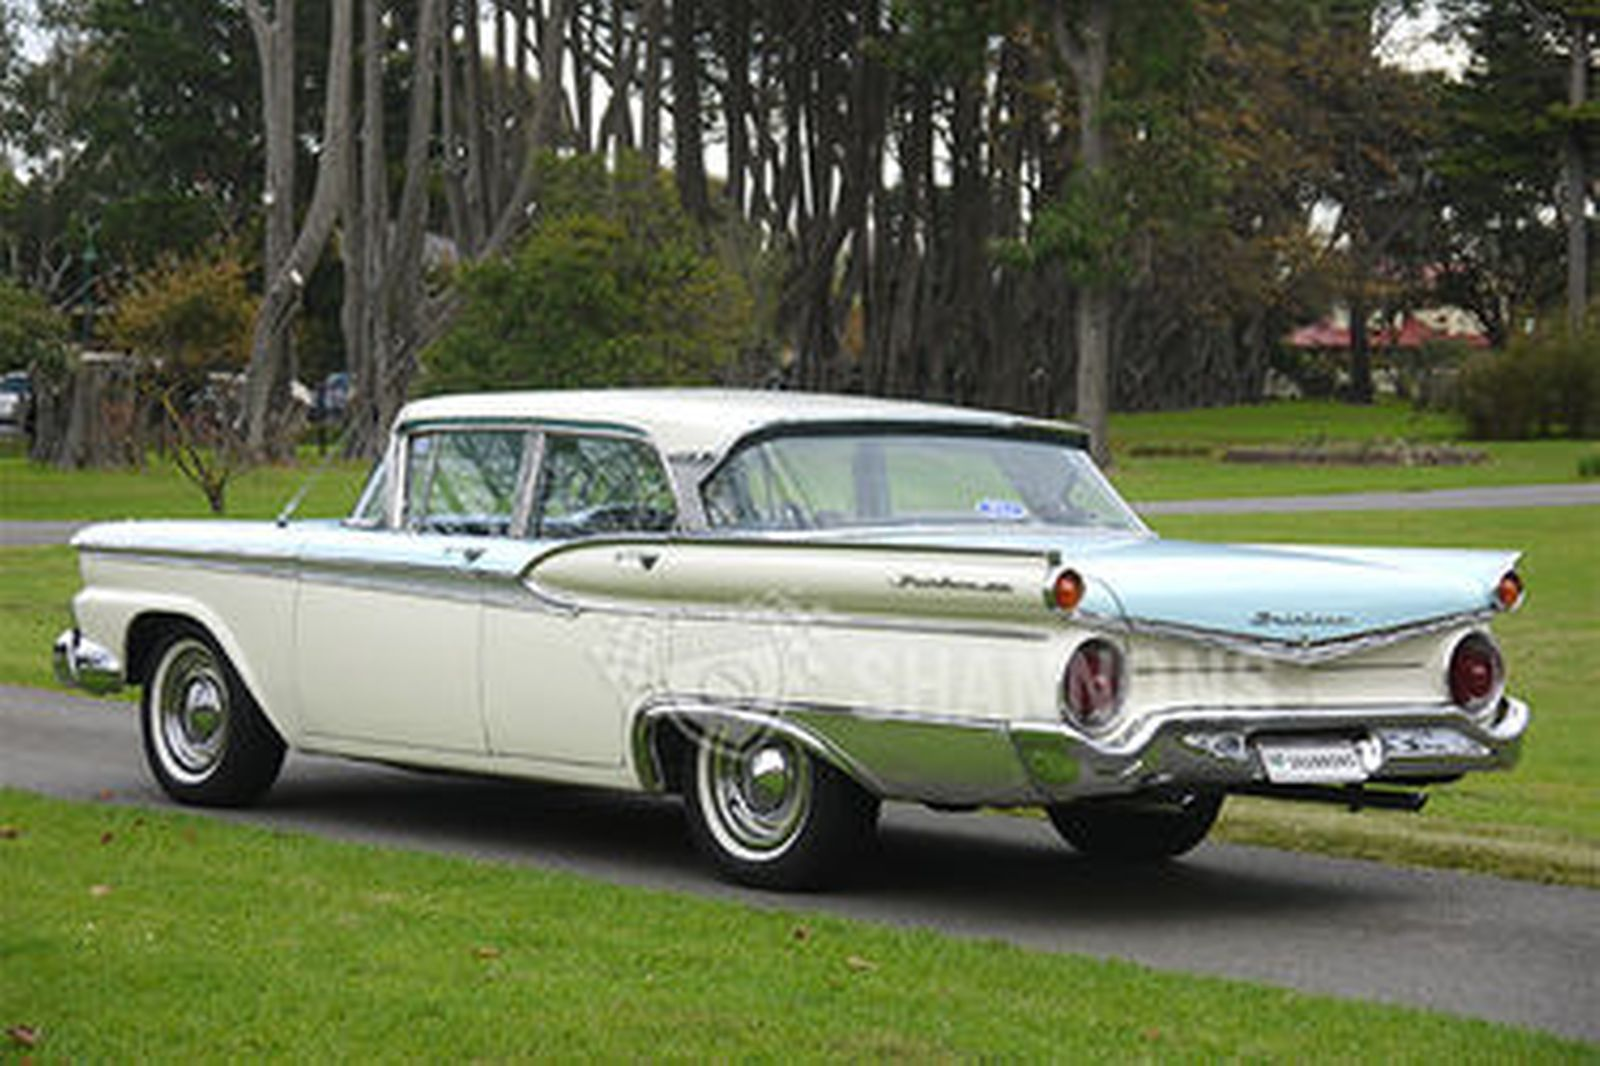 sold ford fairlane 500 tank sedan rhd auctions lot 14 shannons. Black Bedroom Furniture Sets. Home Design Ideas